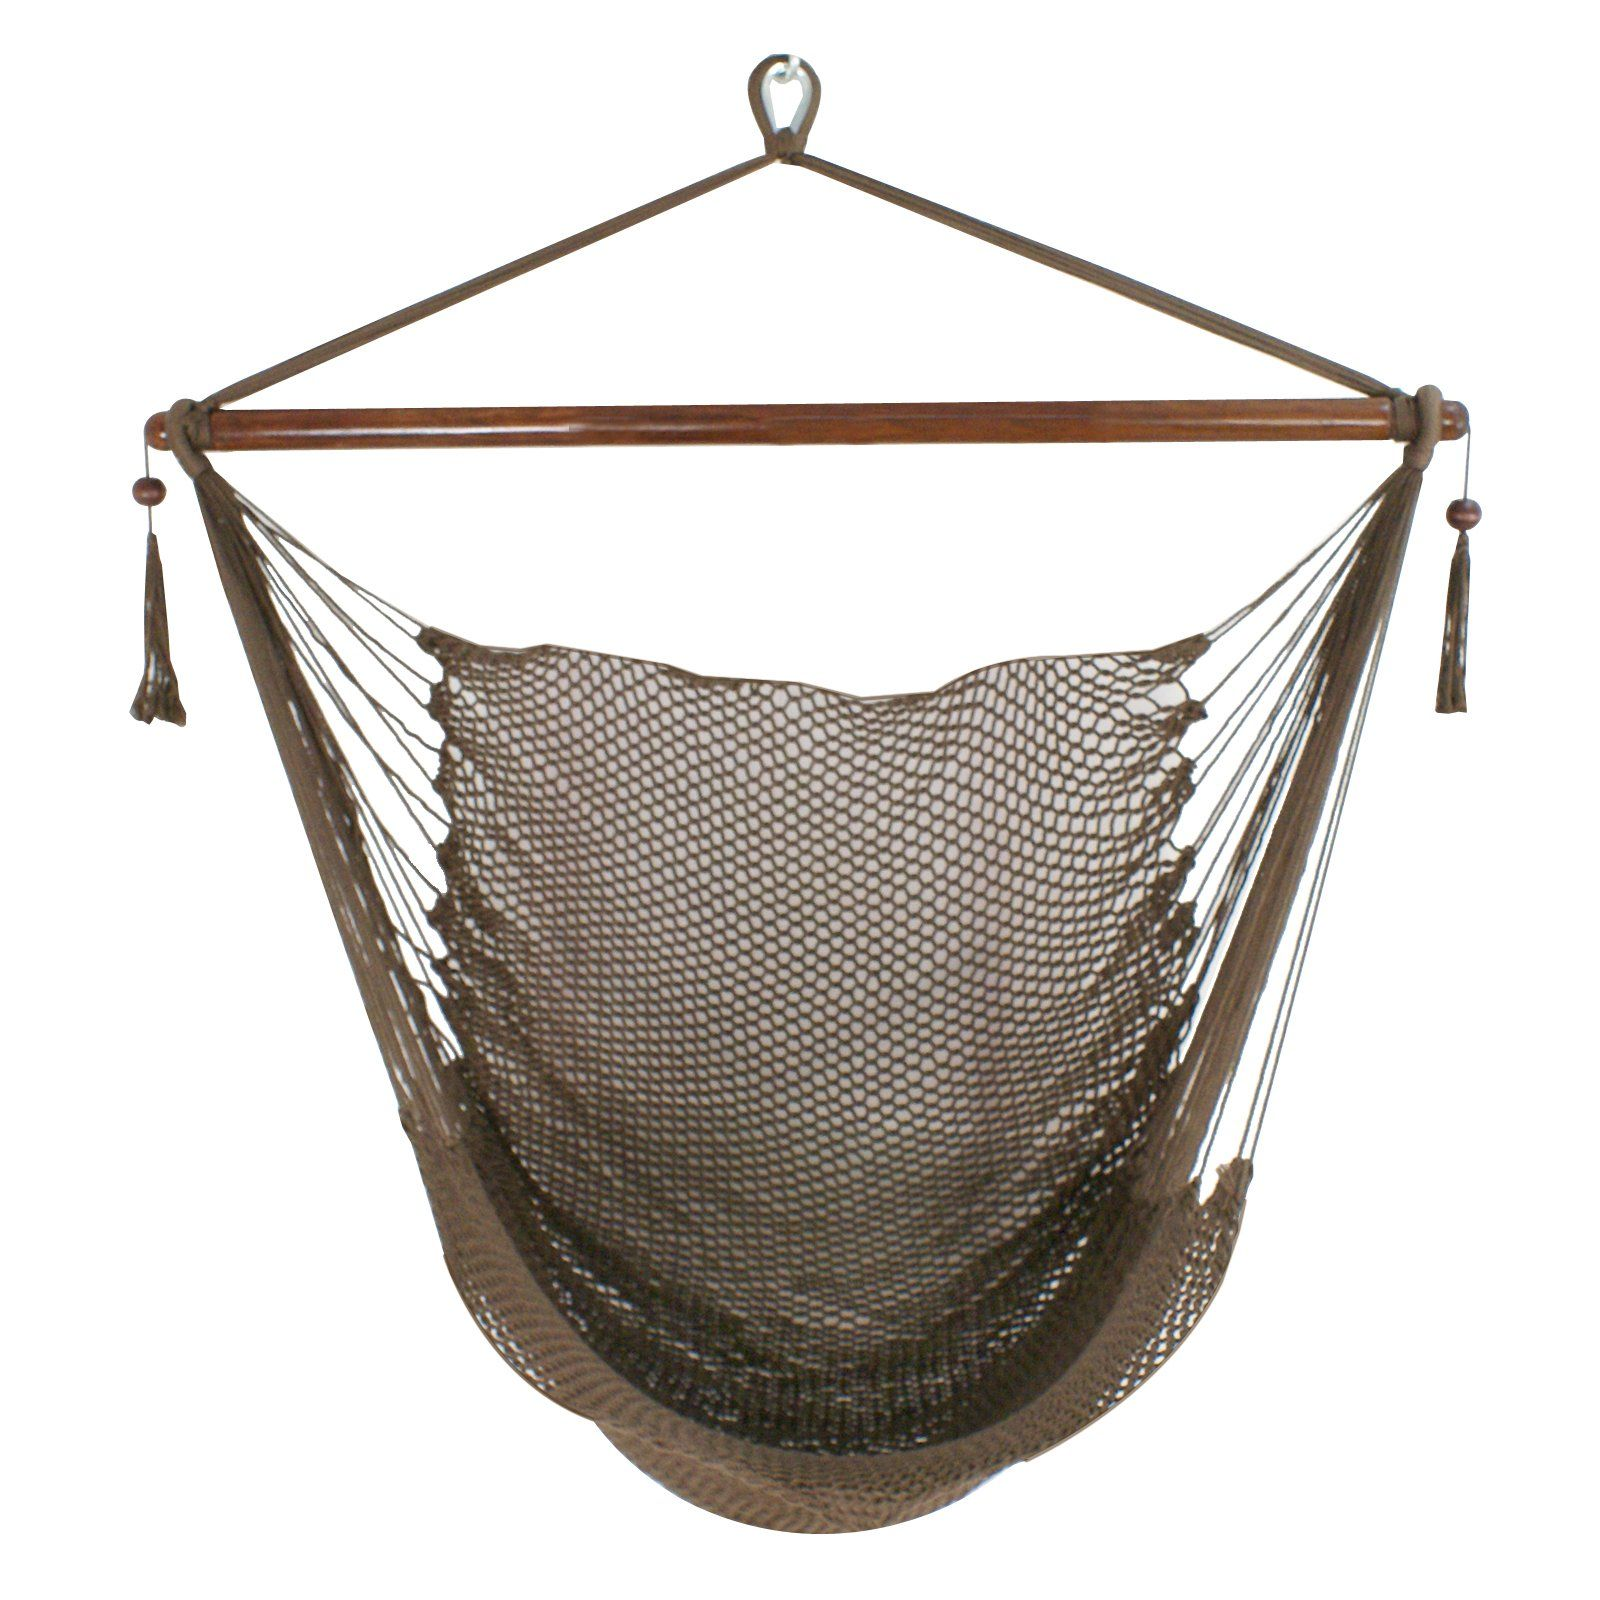 "Zeny Caribbean Hammock Swing Chair 48"" Hanging Rope Chair"